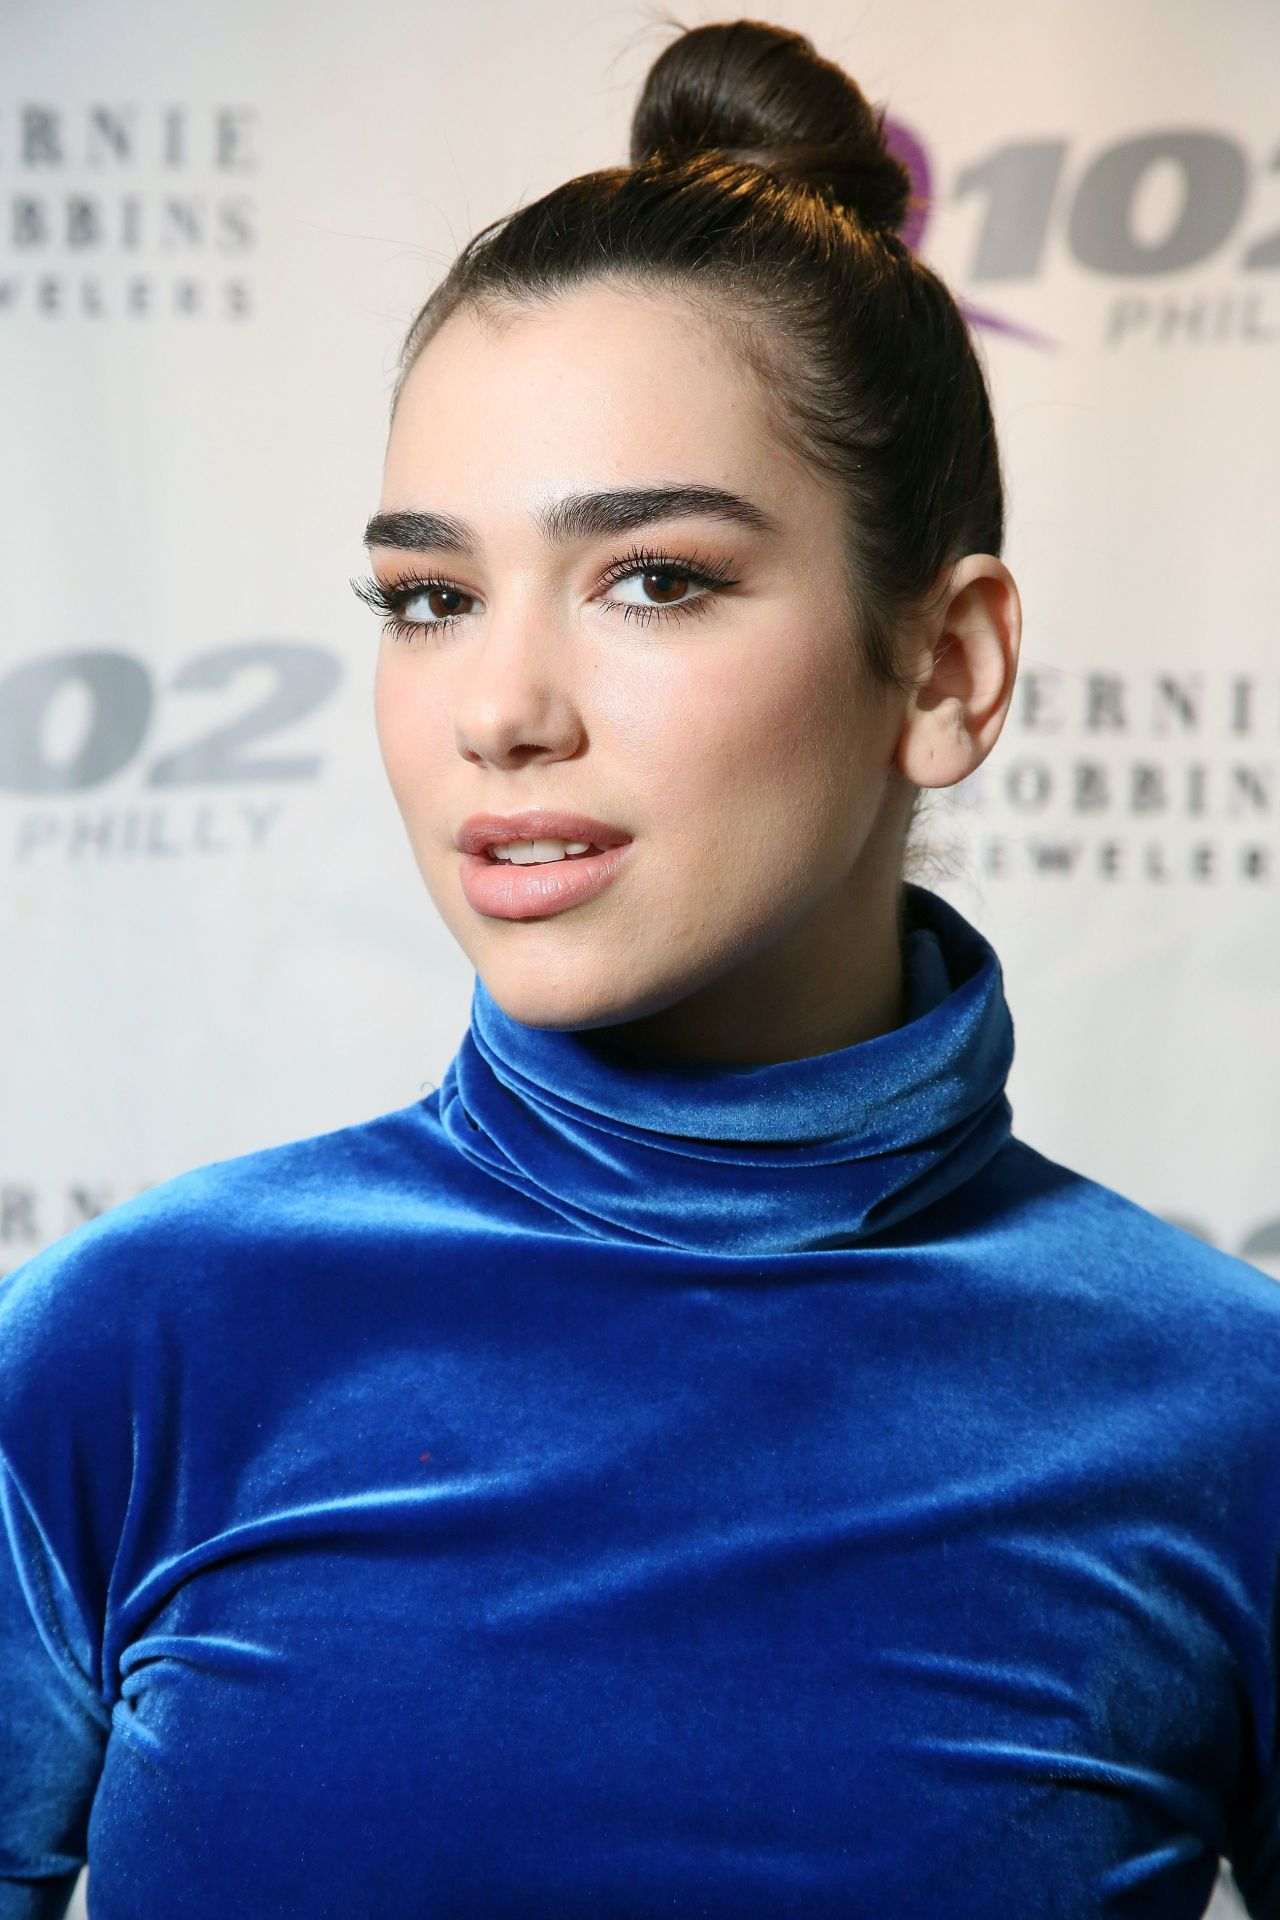 dua lipa - photo #36